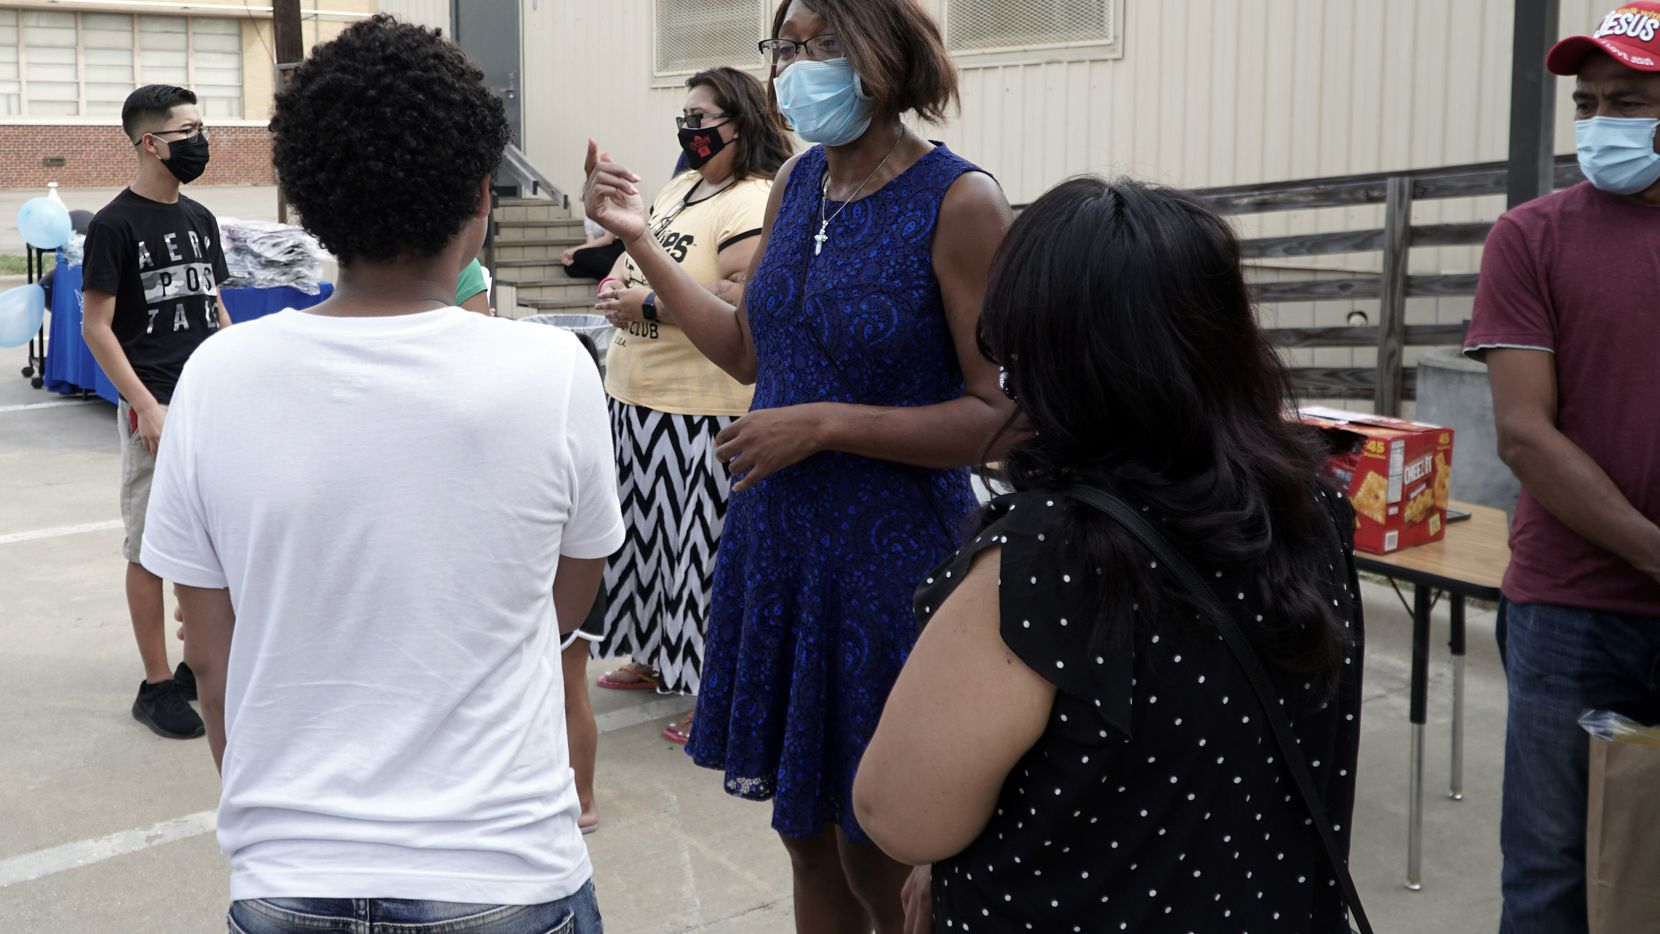 International Newcomer Academy's Principle Angelia Ross speaks with a parent and student during the Back to School Drive on the campus in Fort Worth, Texas, the weekend before classes started.